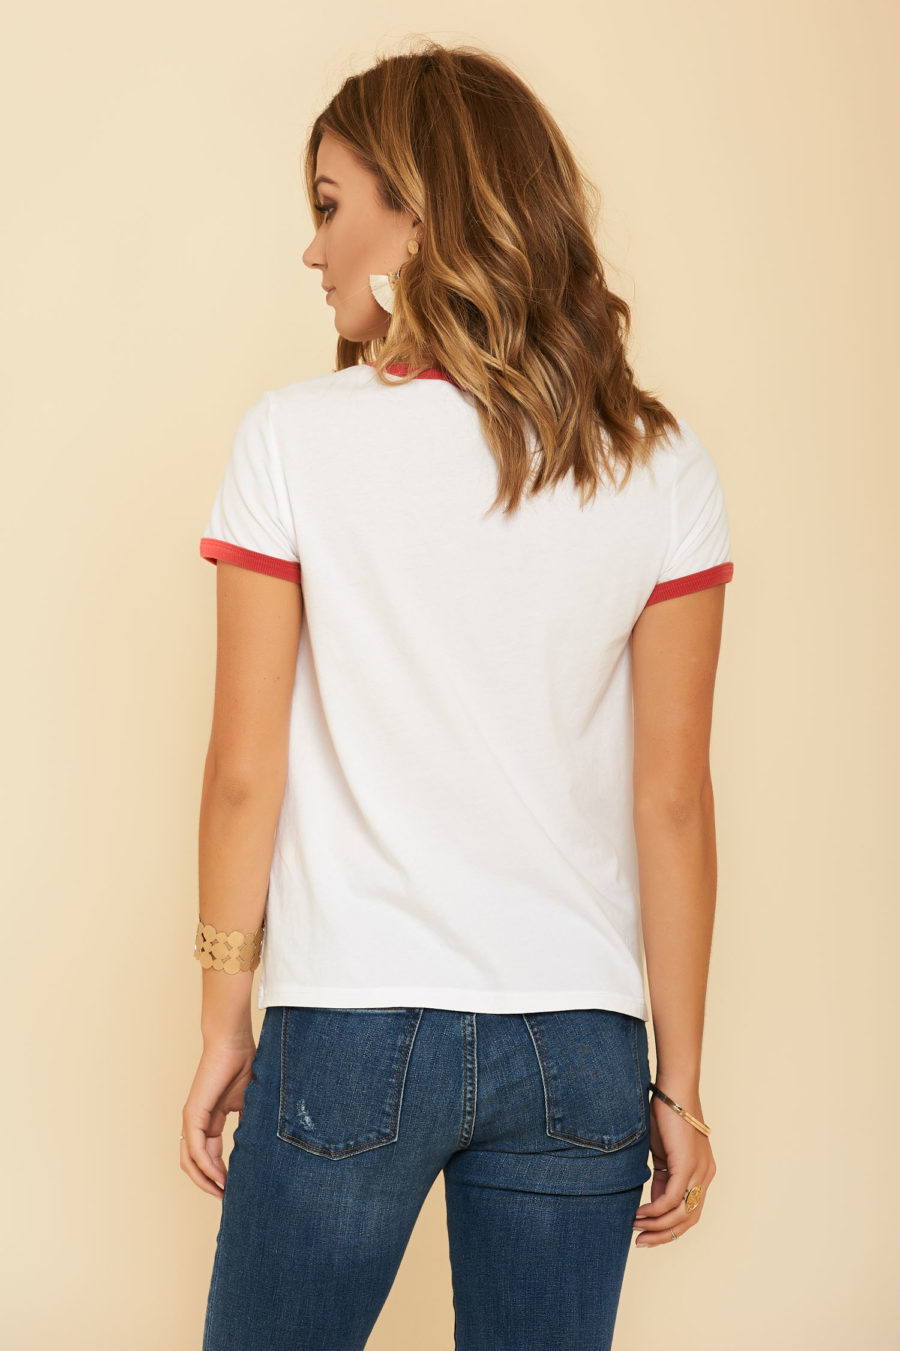 Somedays Lovin: Cherry Delight Tee